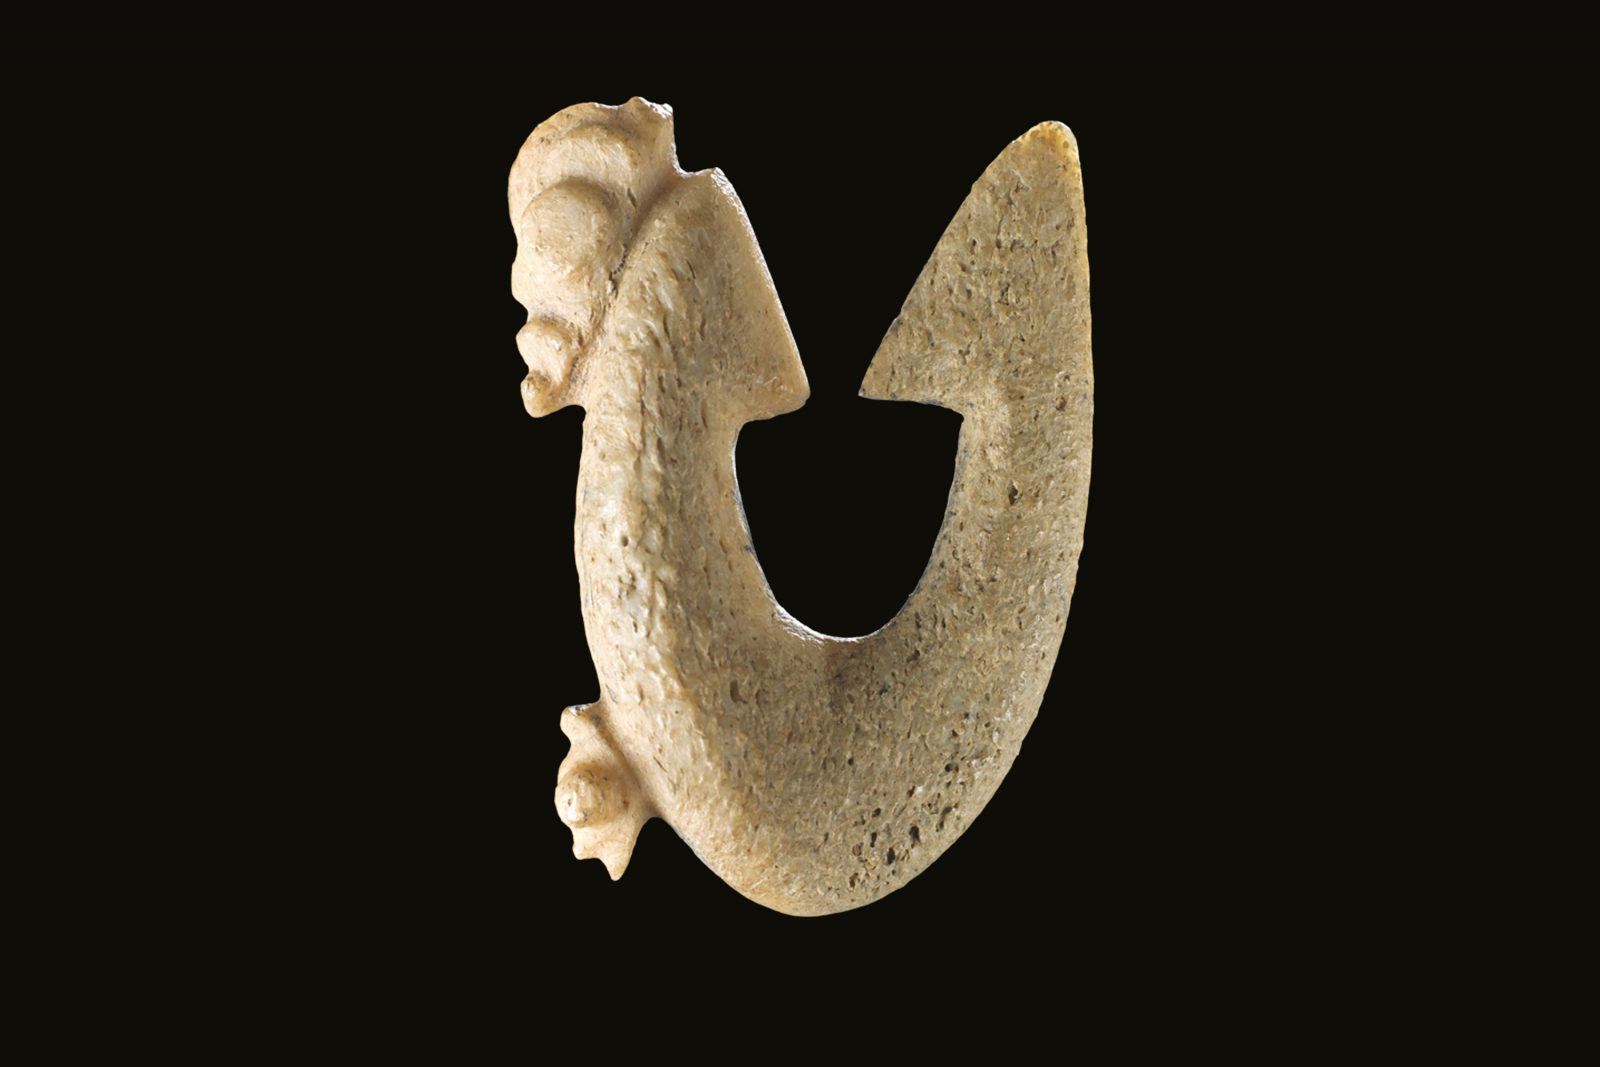 Double internal barb rotating hooks targeted small-mouthed midwater (pelagic) feeding fish such as trevally and tarakihi. Similar bone hooks over 1000 years old are known from sites in North and South America, and some more than 5000 years old in Europe, reflecting similar design solutions to deal with the weakness of the material.